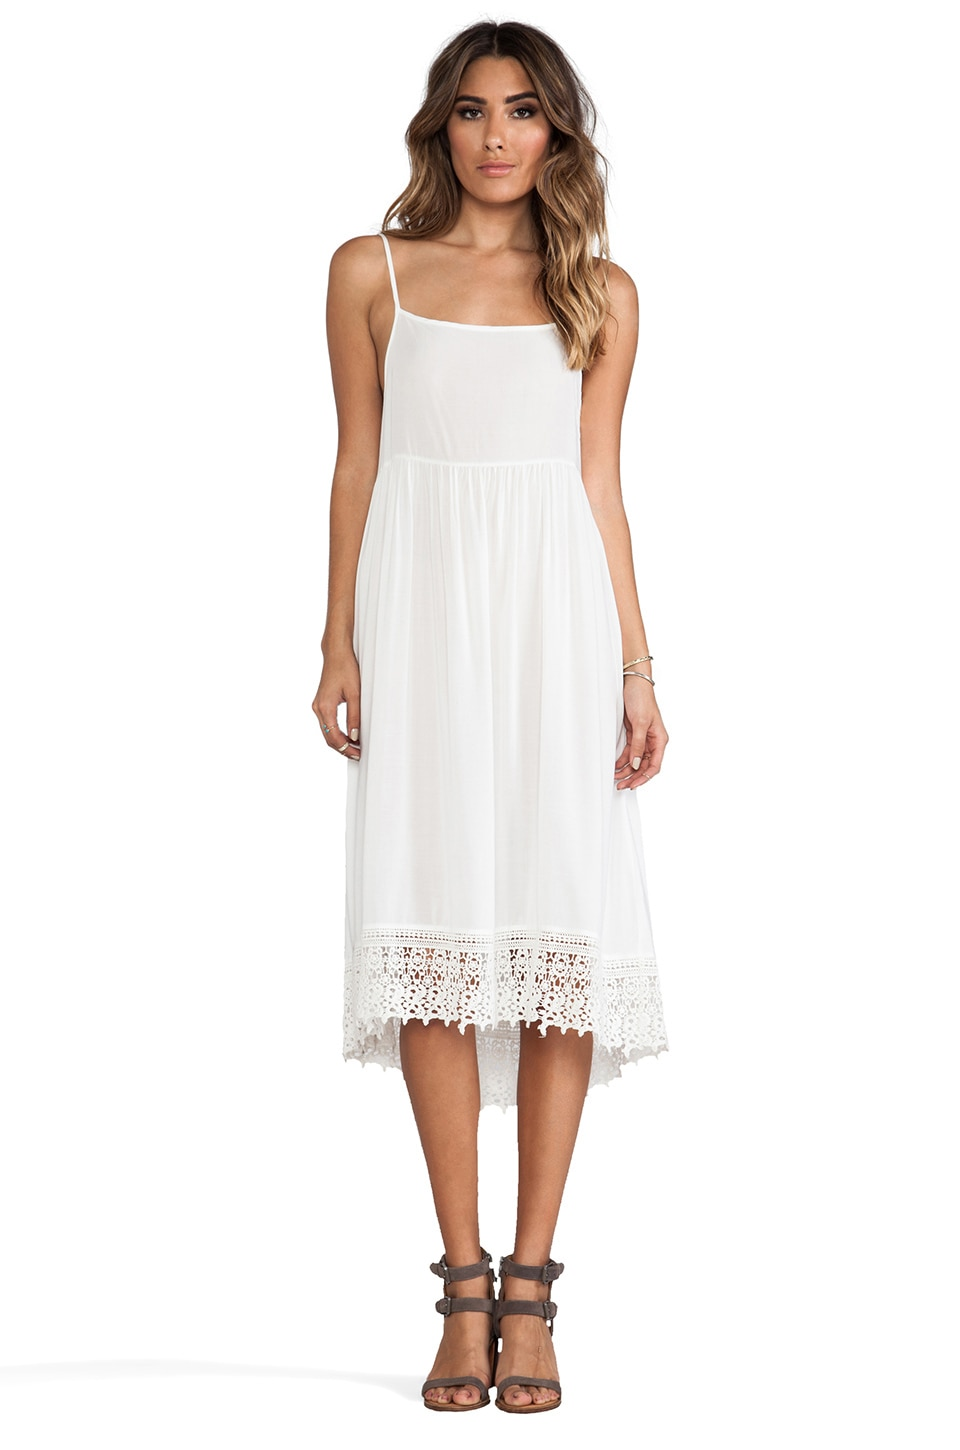 Free People Easy Breezy Crochet Hem Dress in Ivory